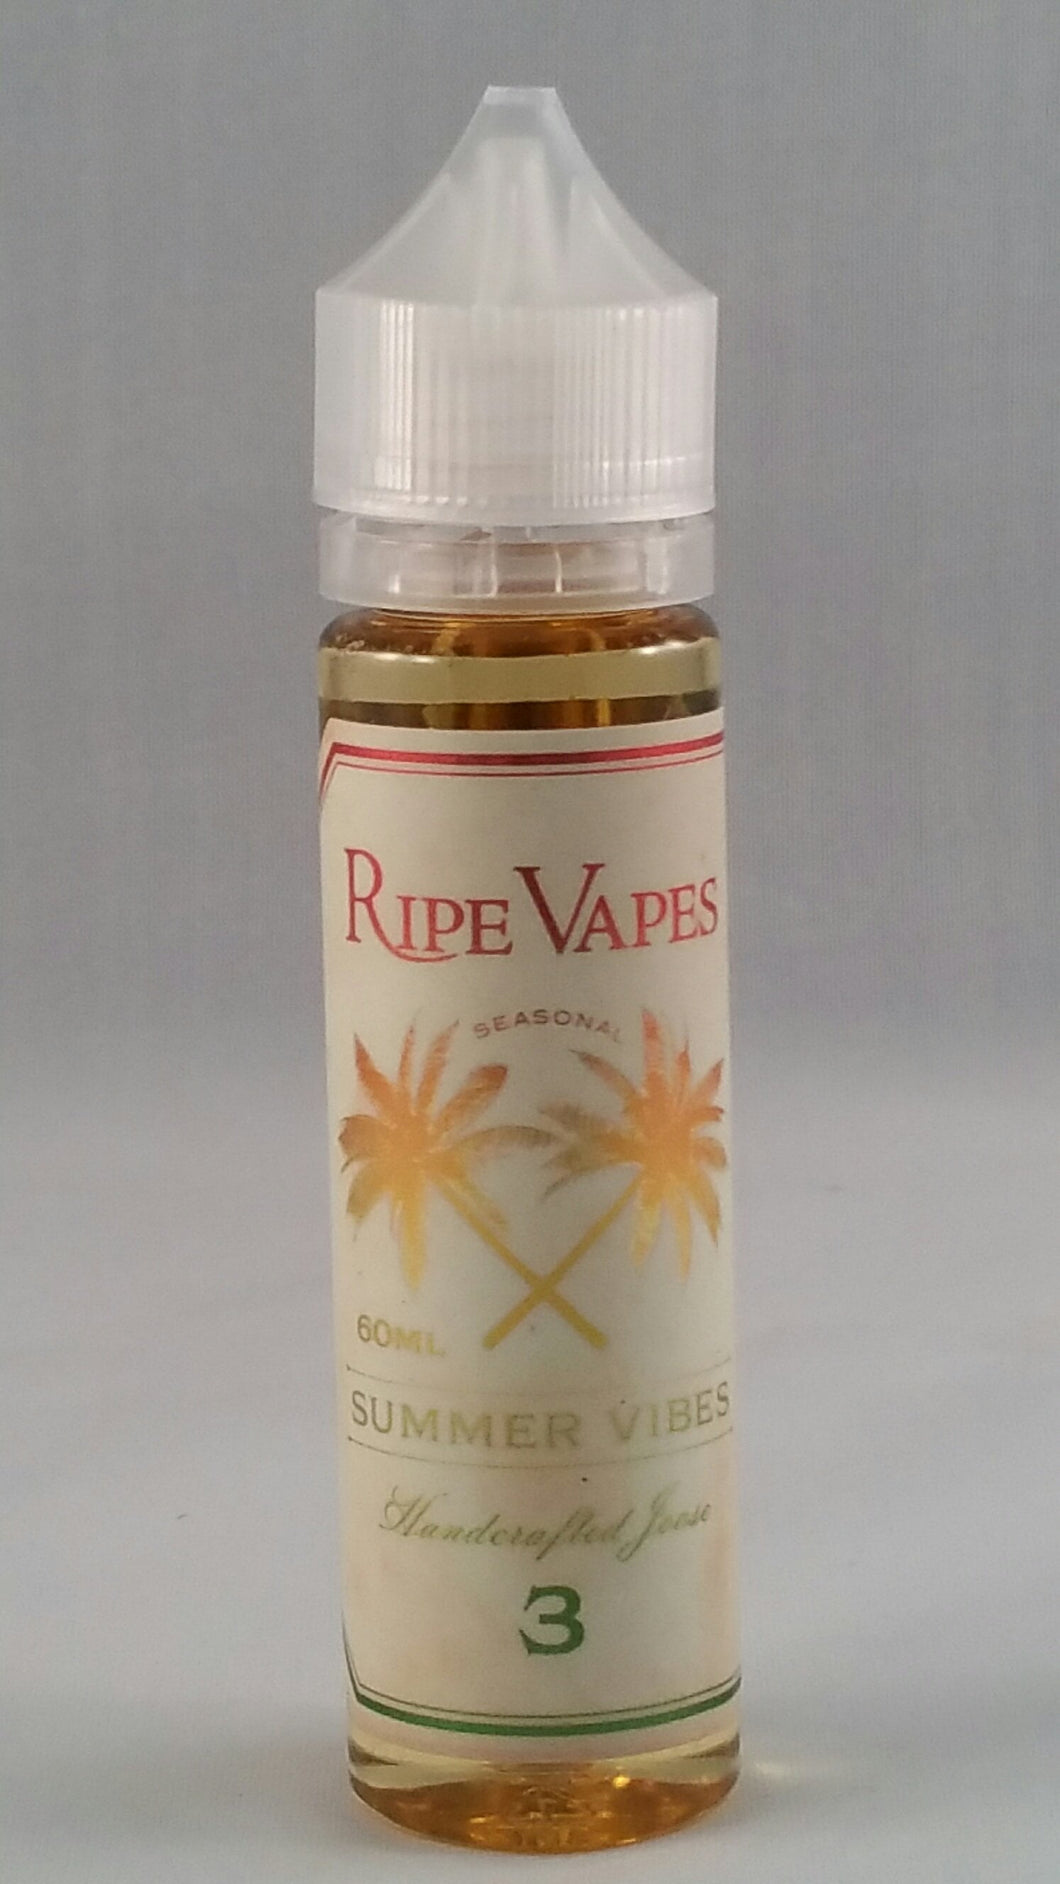 Ripe Vapes Summer Vibes-3mg